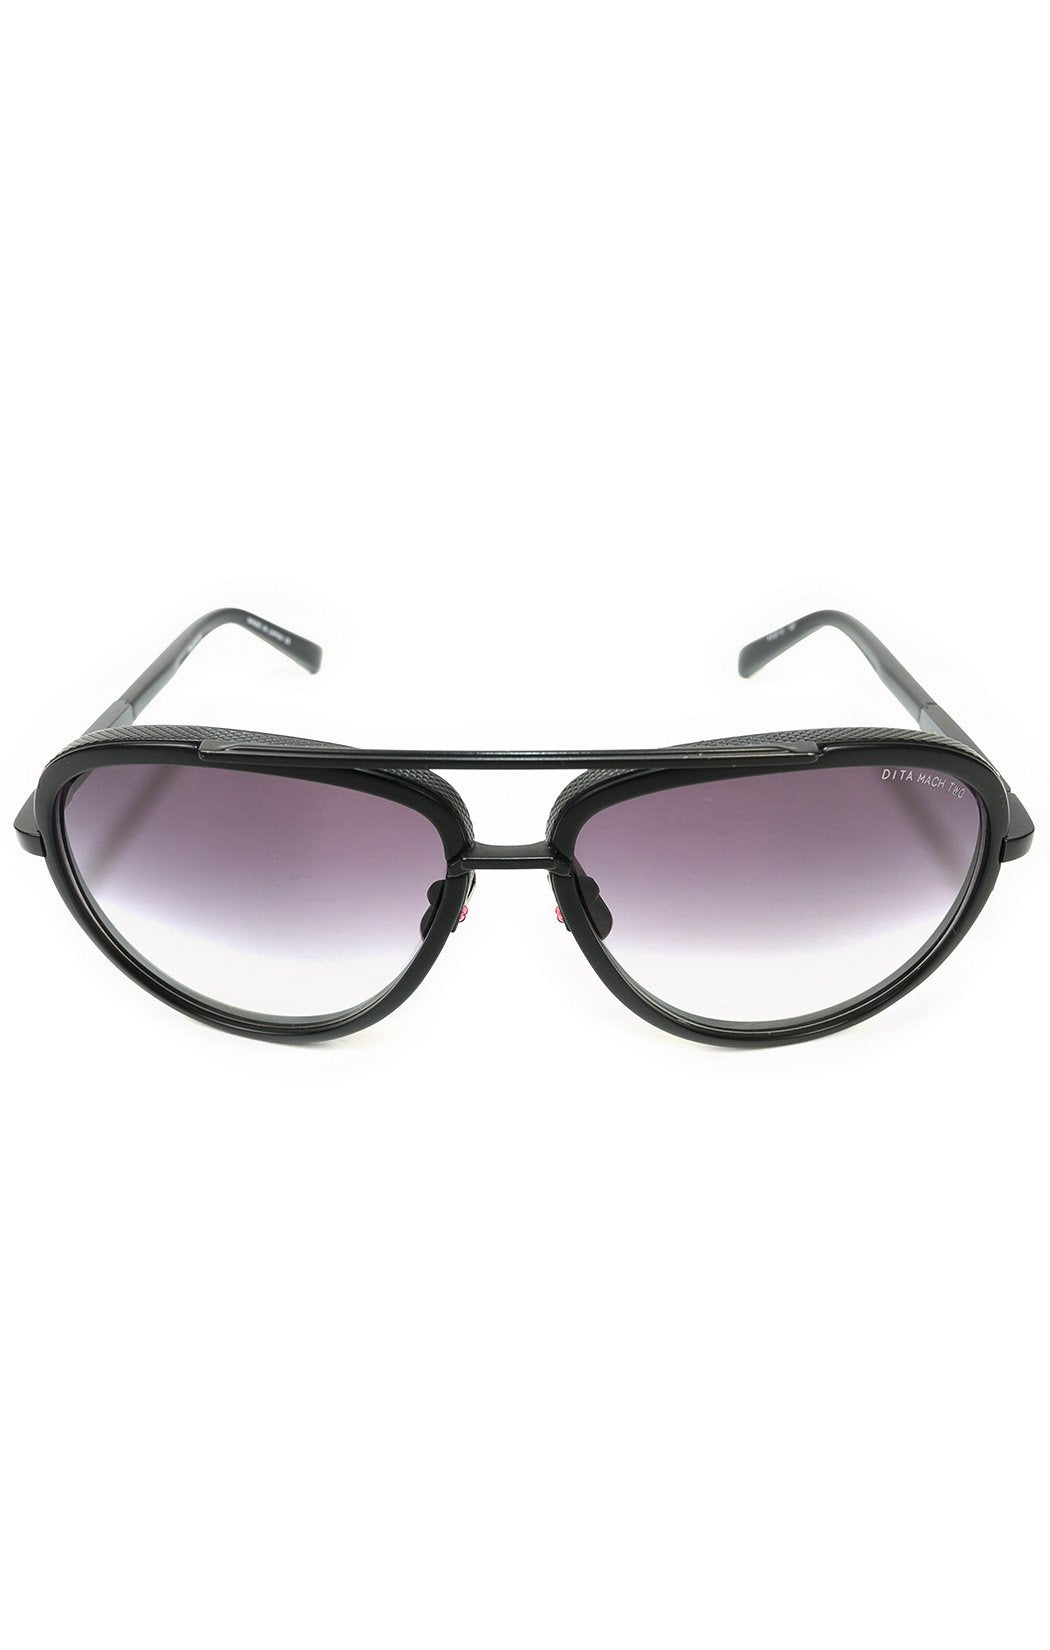 "Front view of DITA BELIEVER Sunglasses Size: 5.5"" L x 2.25"" W"